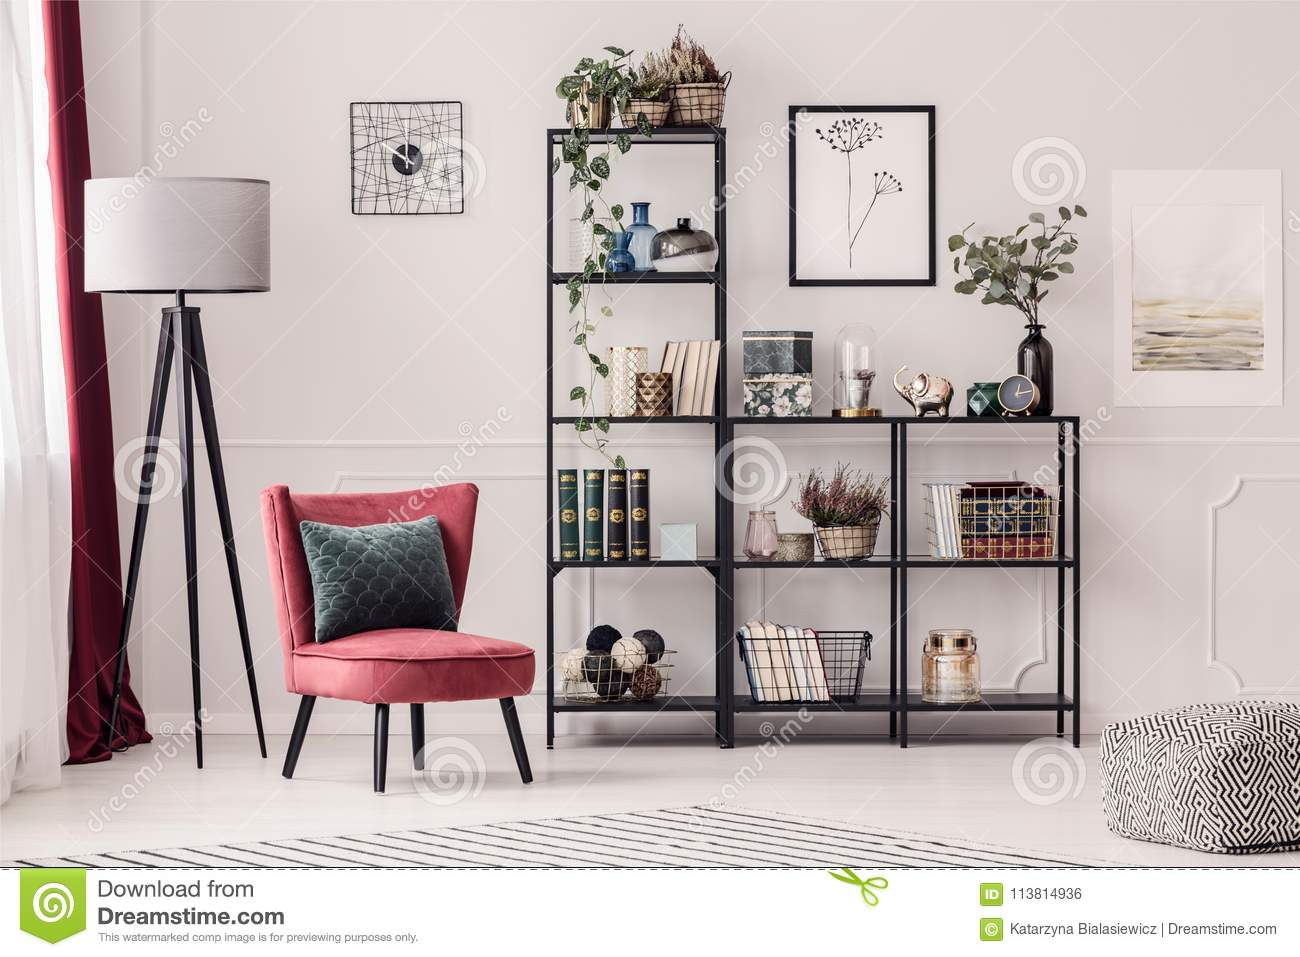 bookshelf in living room black leather furniture ideas stock photo image of rack 113814936 metal lamp and red armchair interior